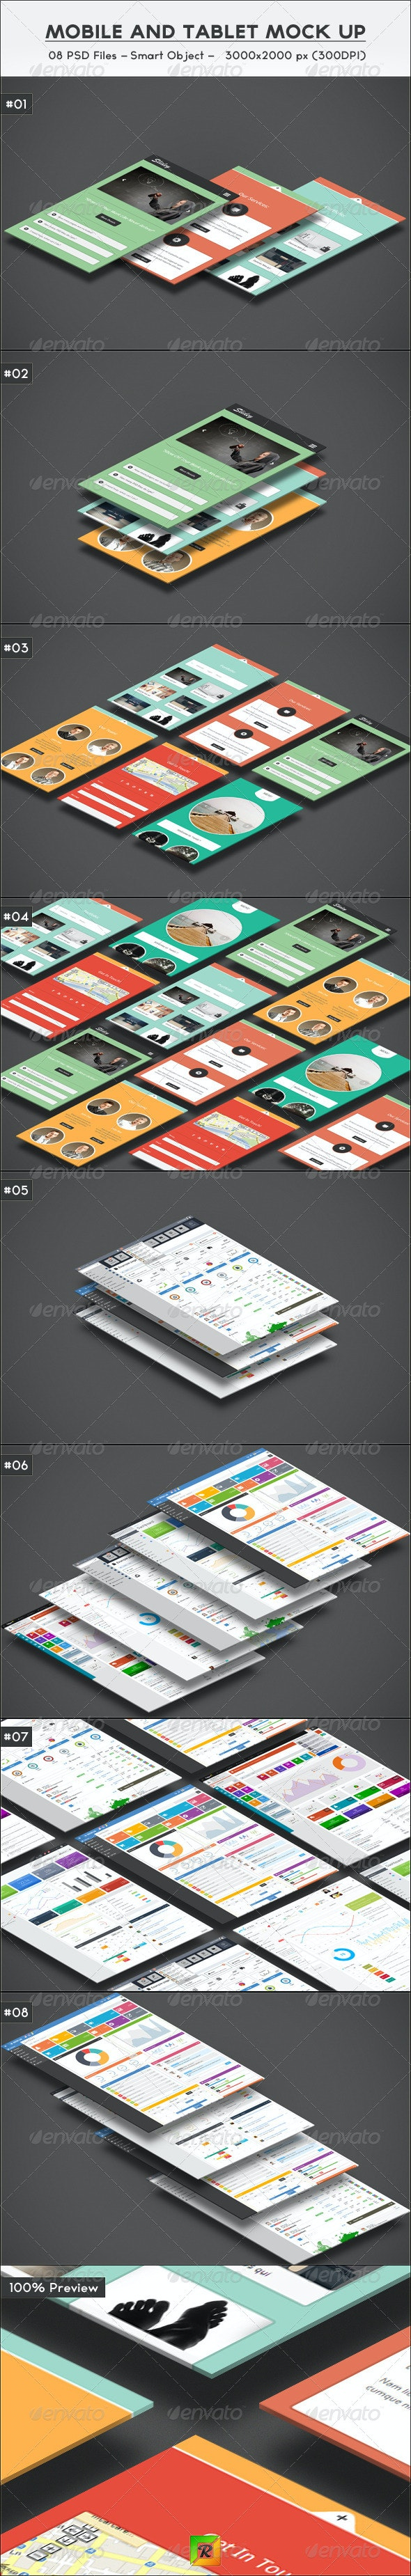 Mobile And Tablet Mock Up - Mobile Displays